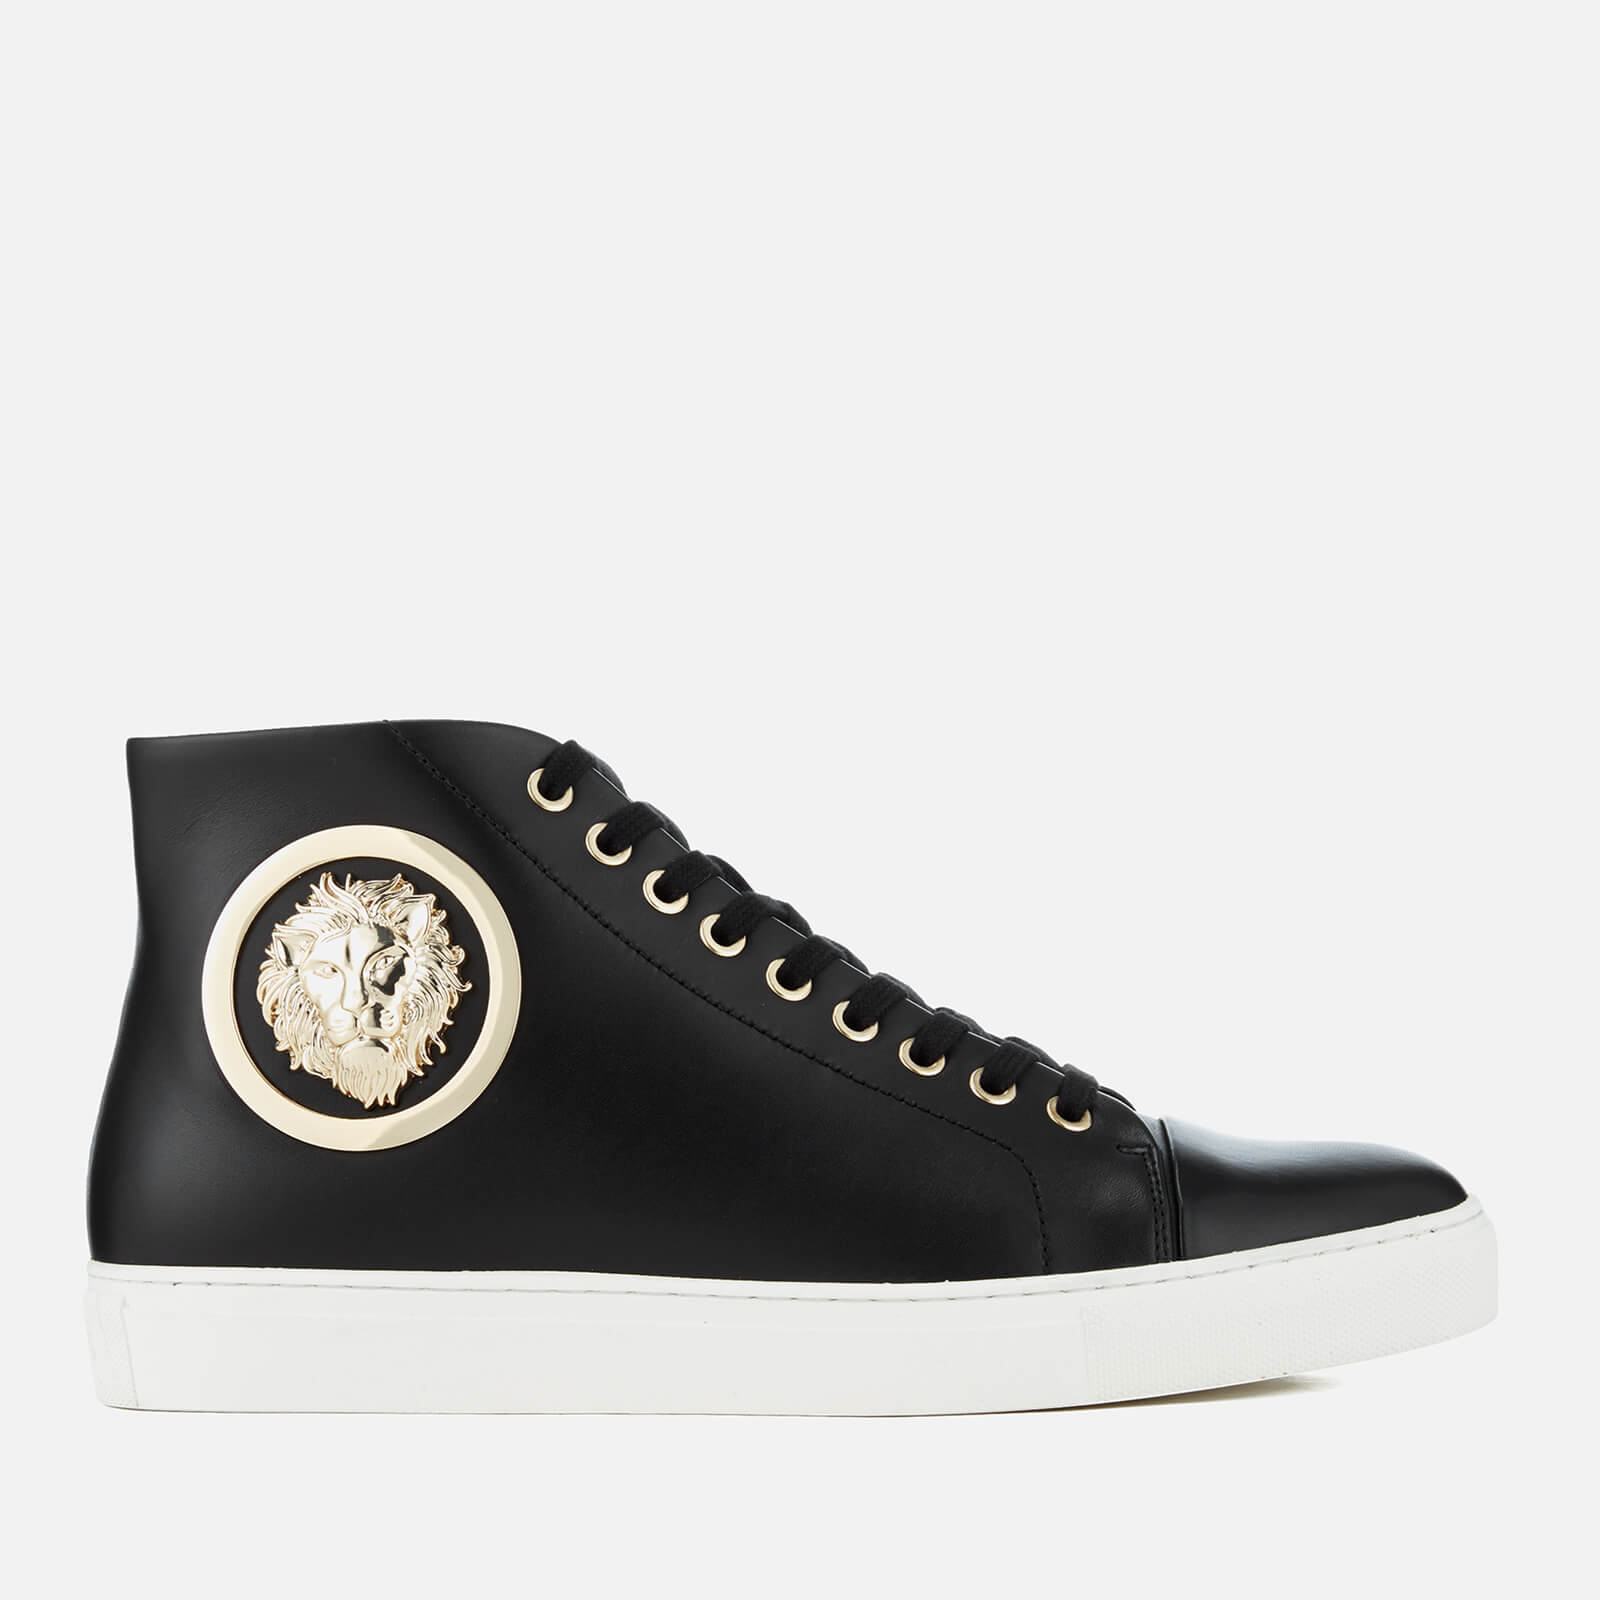 34f1ef12b9ed9 Versus Versace Men s Round Gold Logo High Top Trainers - Black Optic  White Light Gold - Free UK Delivery over £50